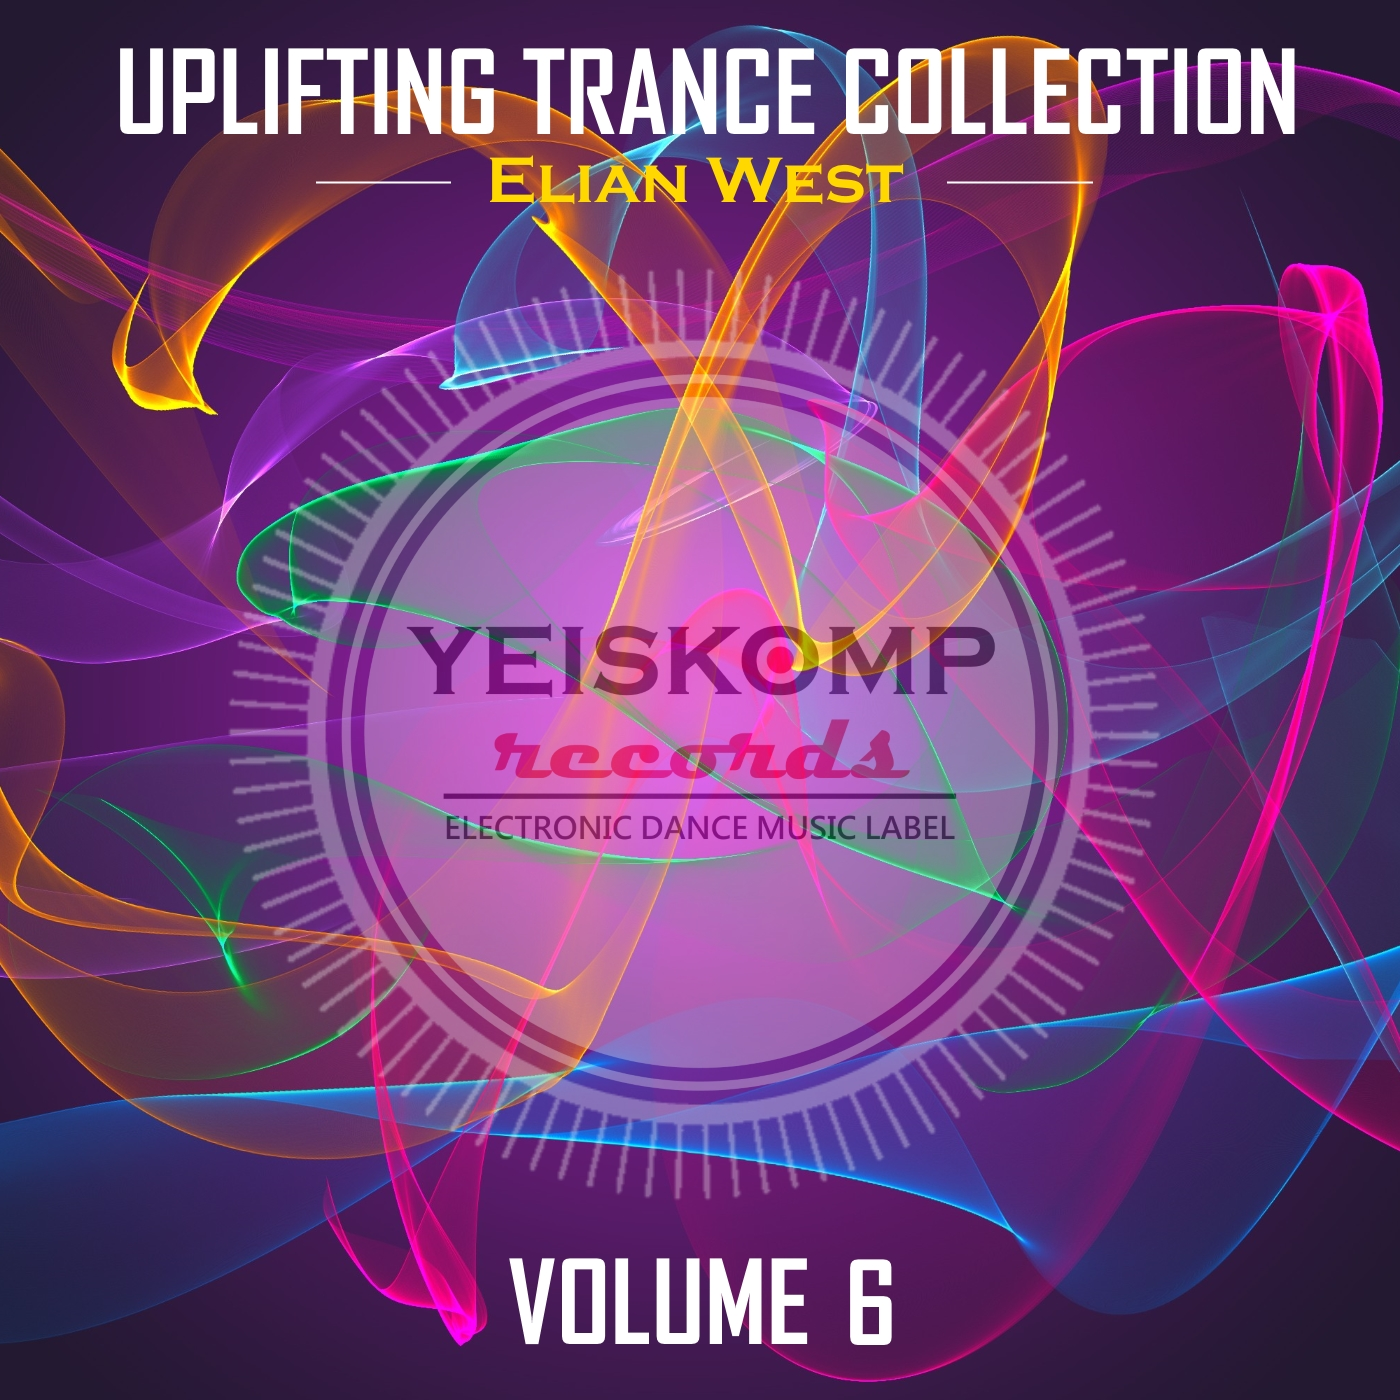 Uplifting Trance Collection by Elian West, Vol. 6